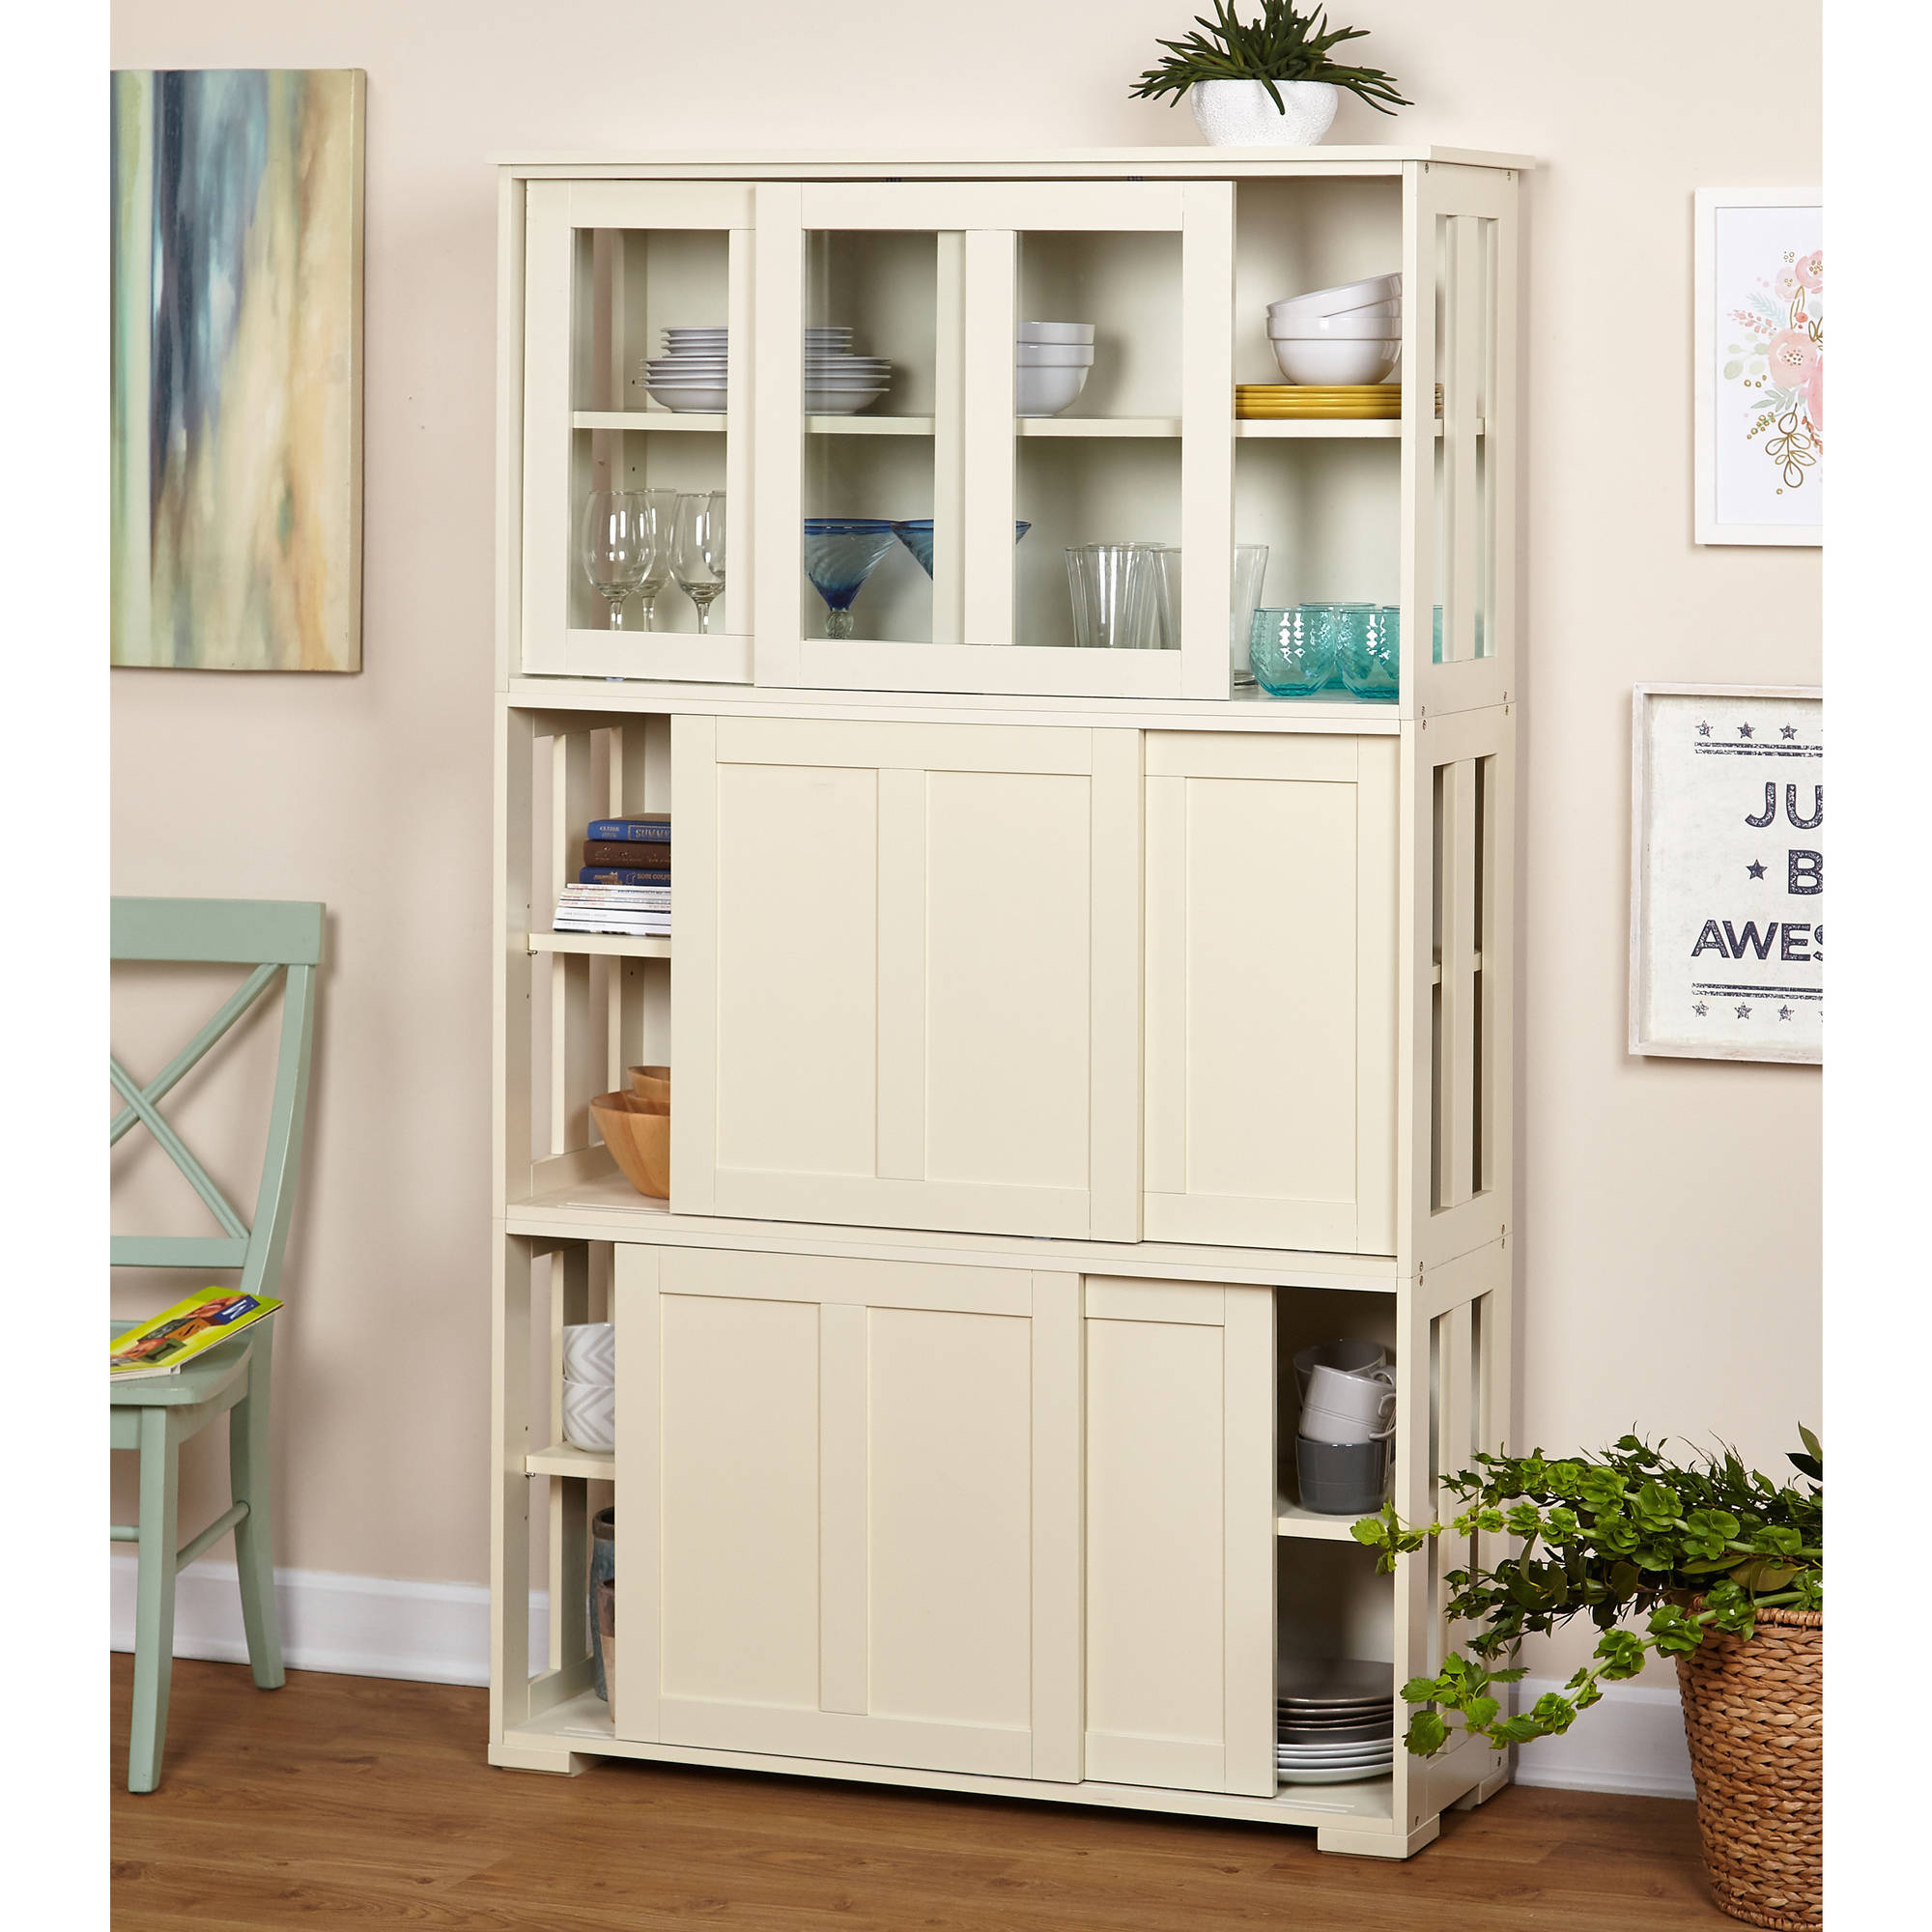 White Farmhouse Sliding Door Cabinet: Sliding Wood Doors Stackable Storage Cabinet, Multiple